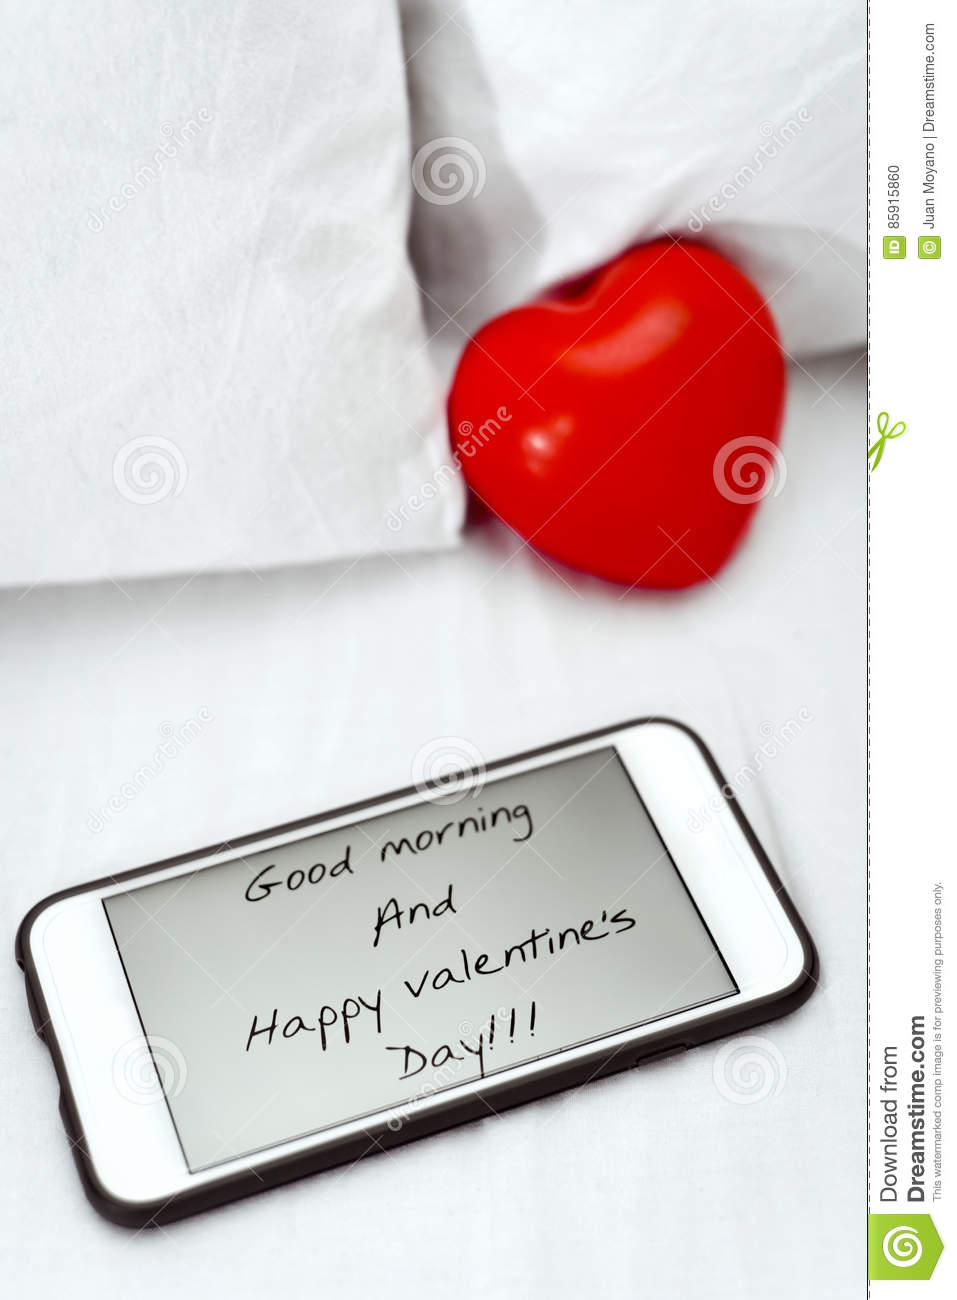 Text Good Morning And Happy Valentines Day Stock Photo Image Of